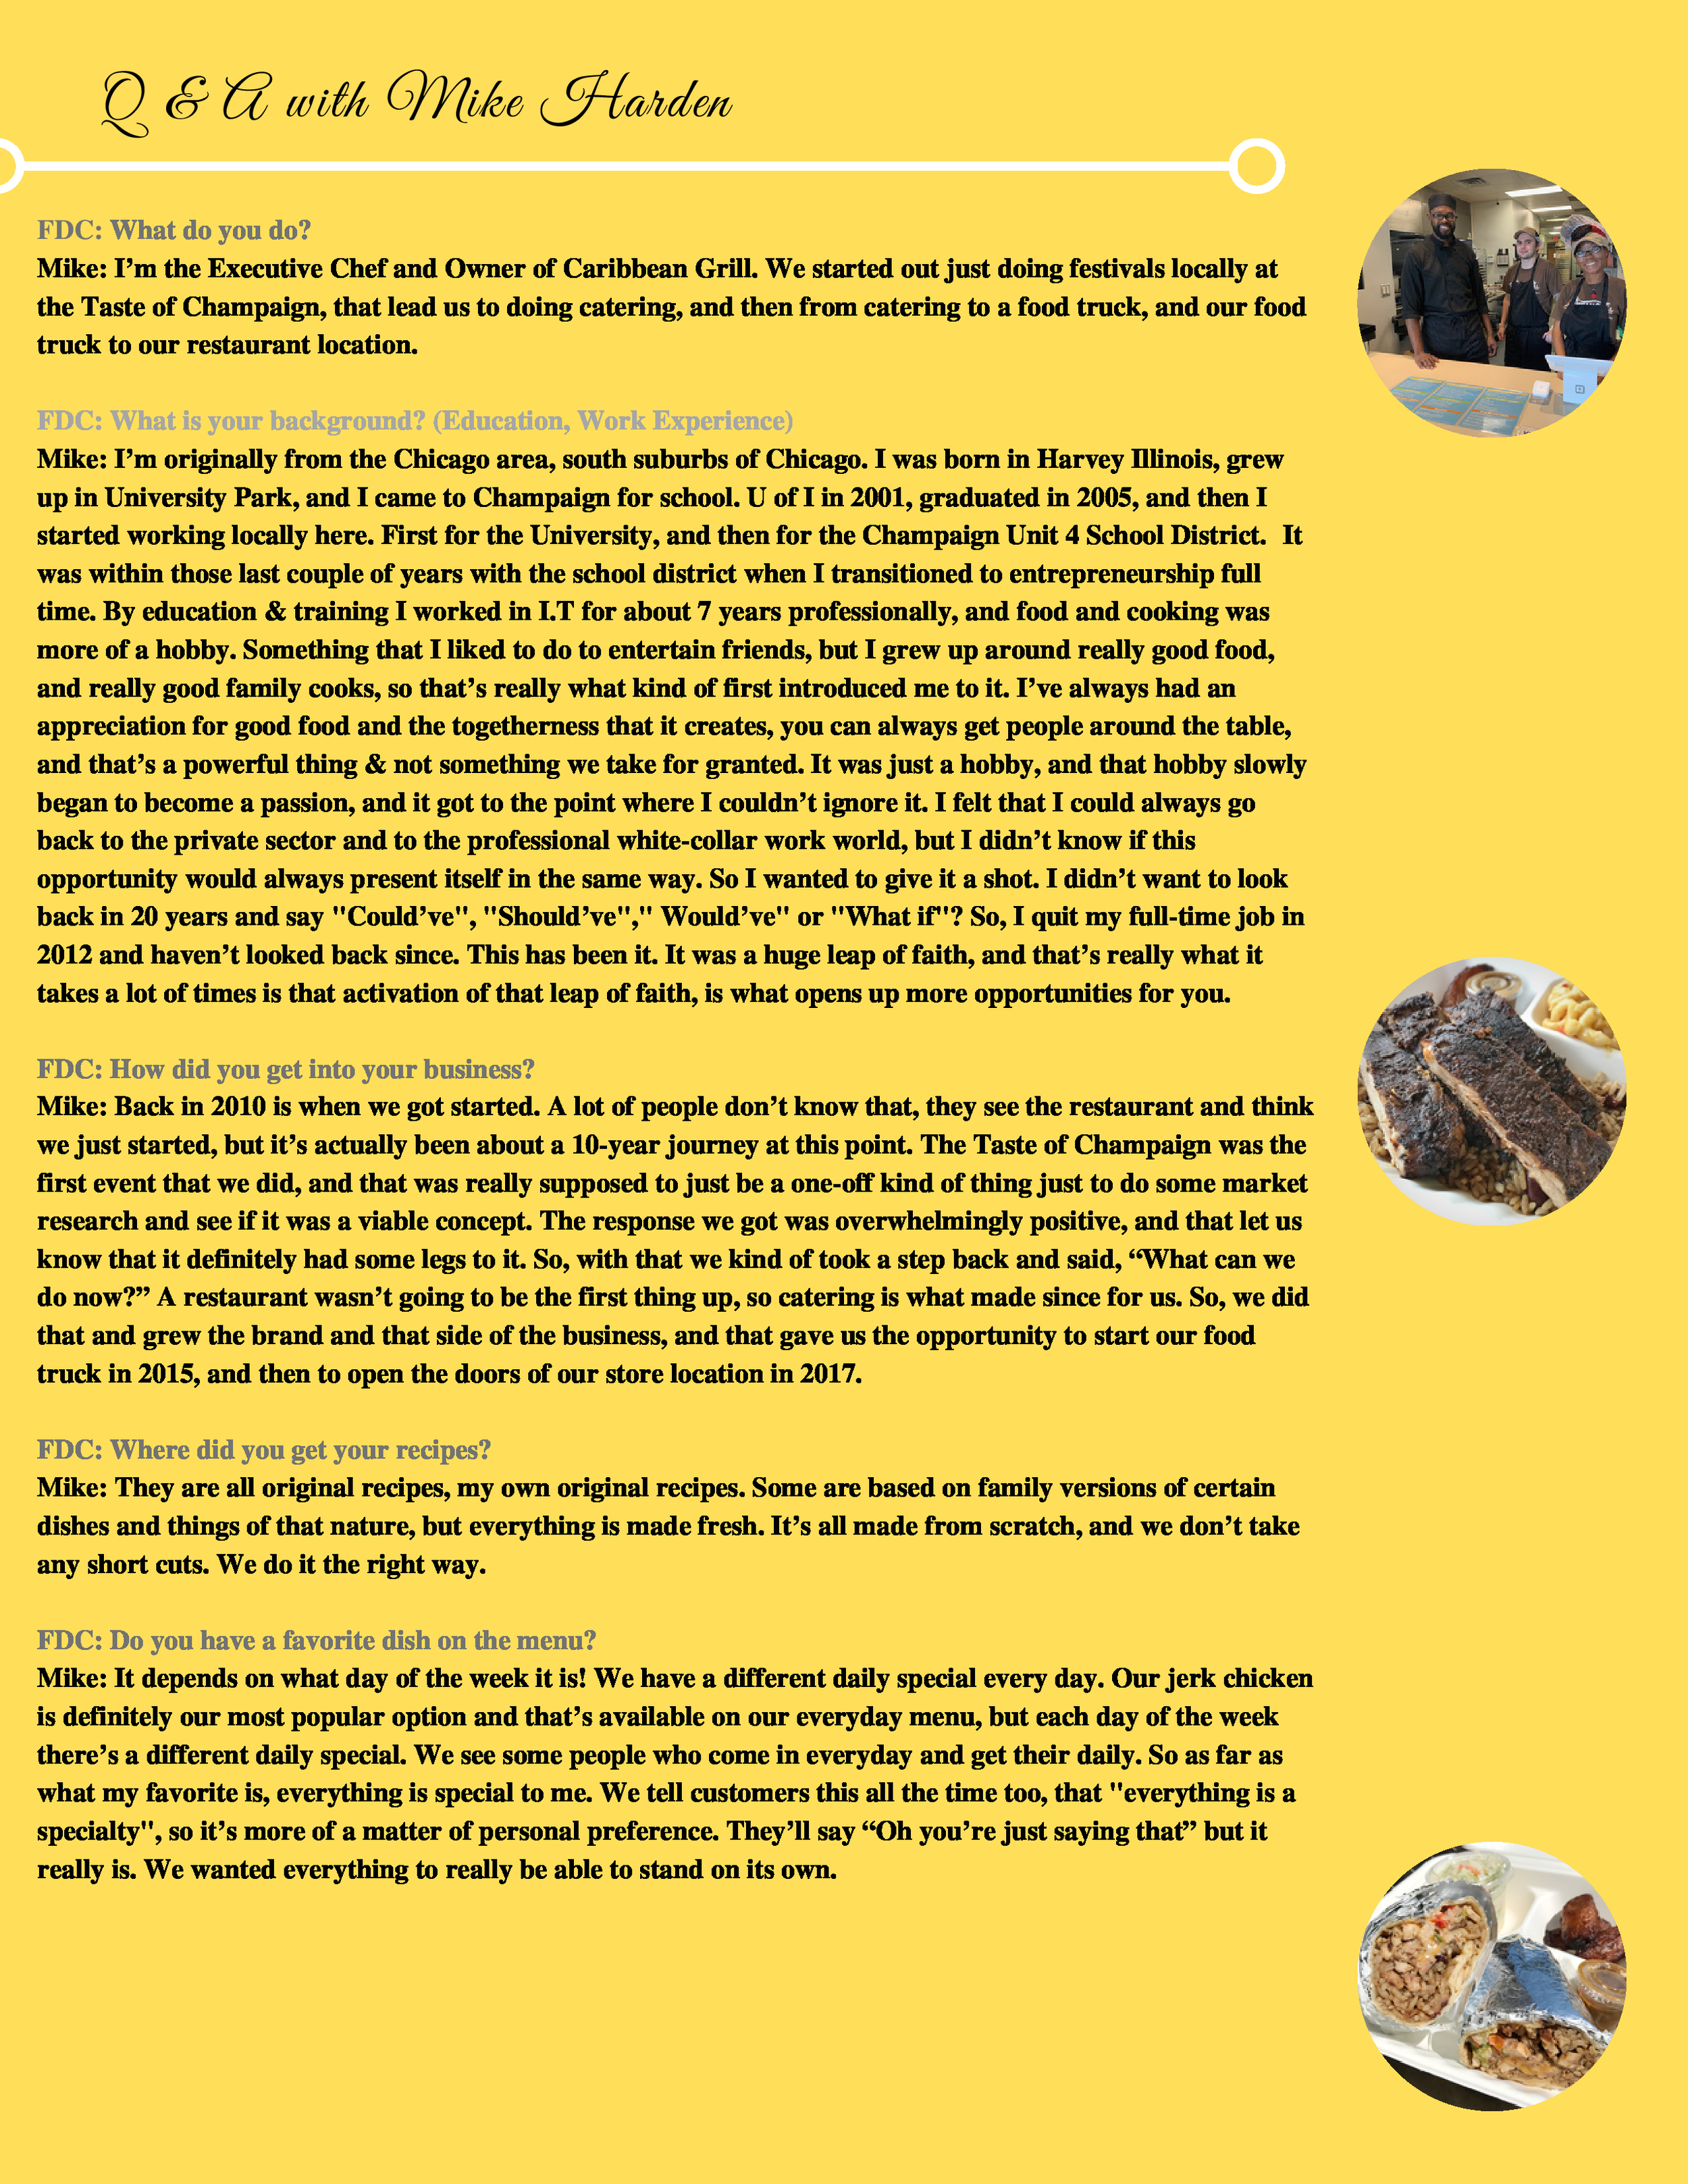 FDC Bi-Monthly Newsletter - Edition 1 - July 2019-3.png